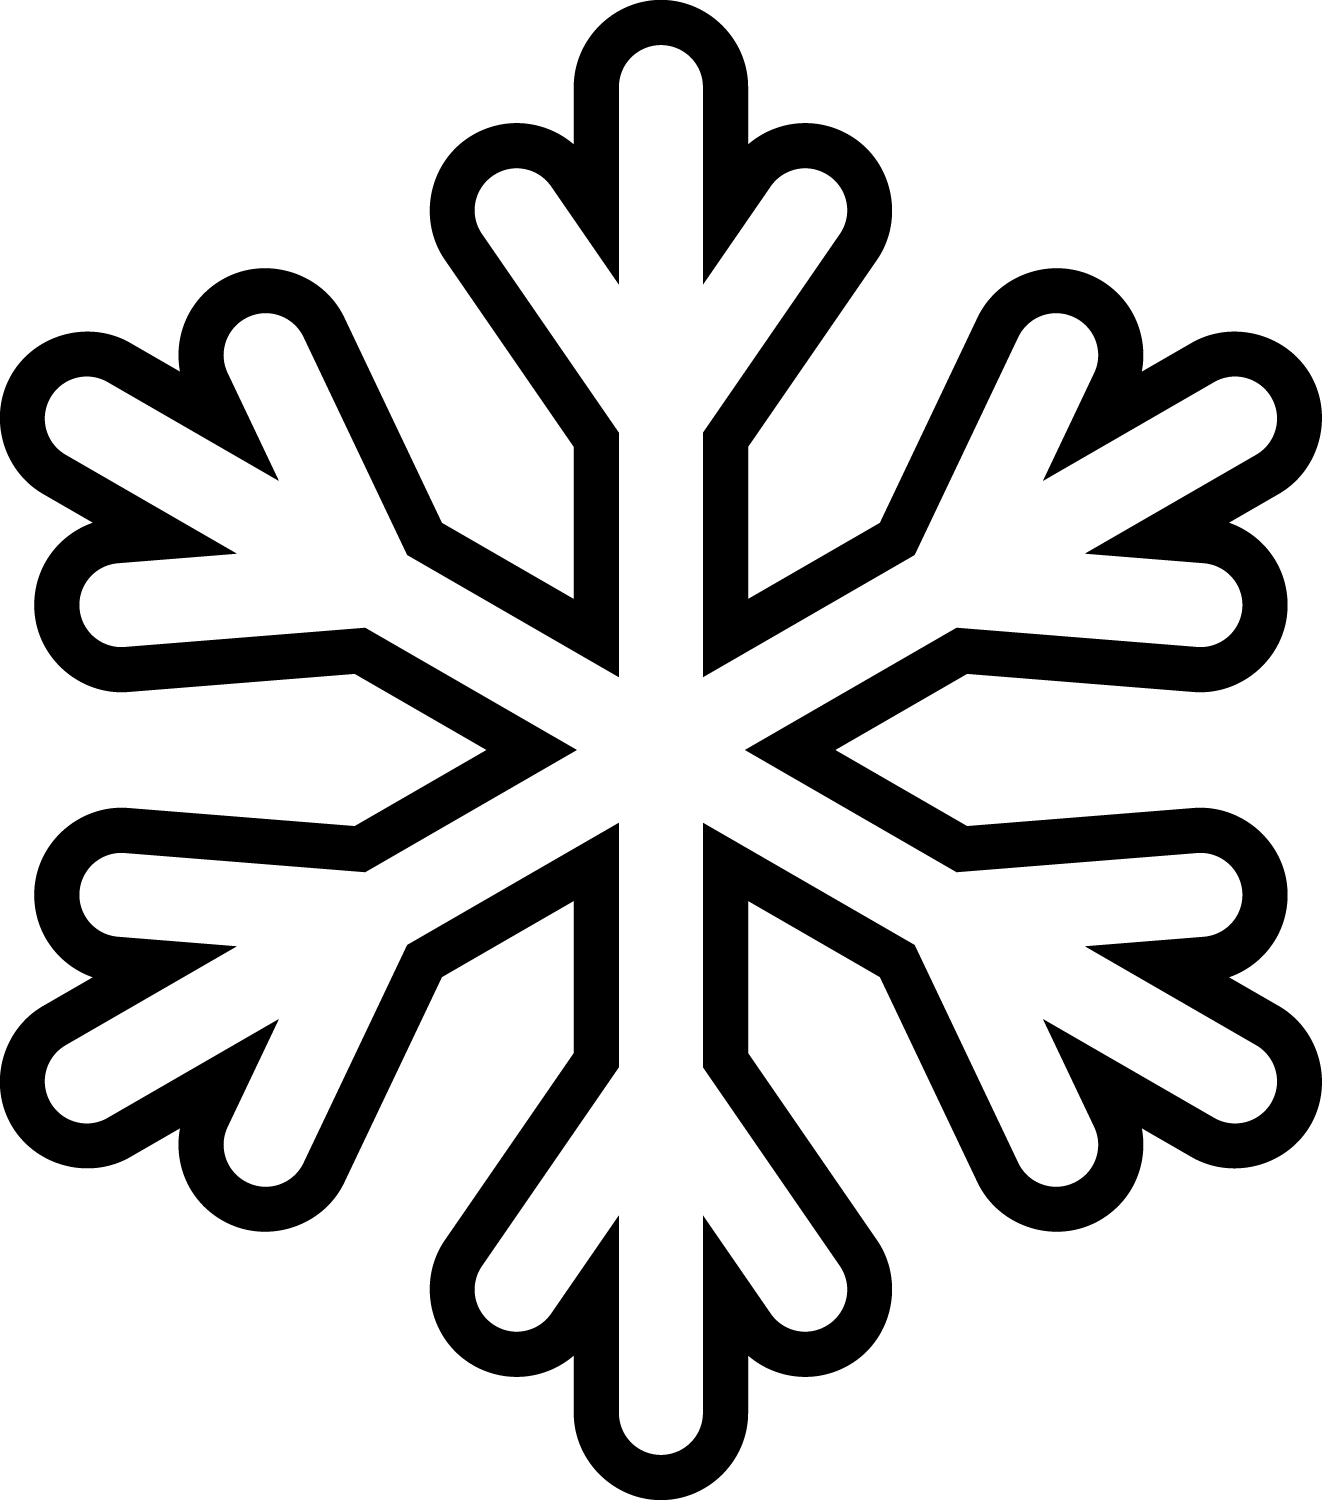 Snowflake clipart solid white graphic transparent download snowflake-clipart-outline-xigKKLE5T.png.cf.png (1322×1500) | Diy ... graphic transparent download